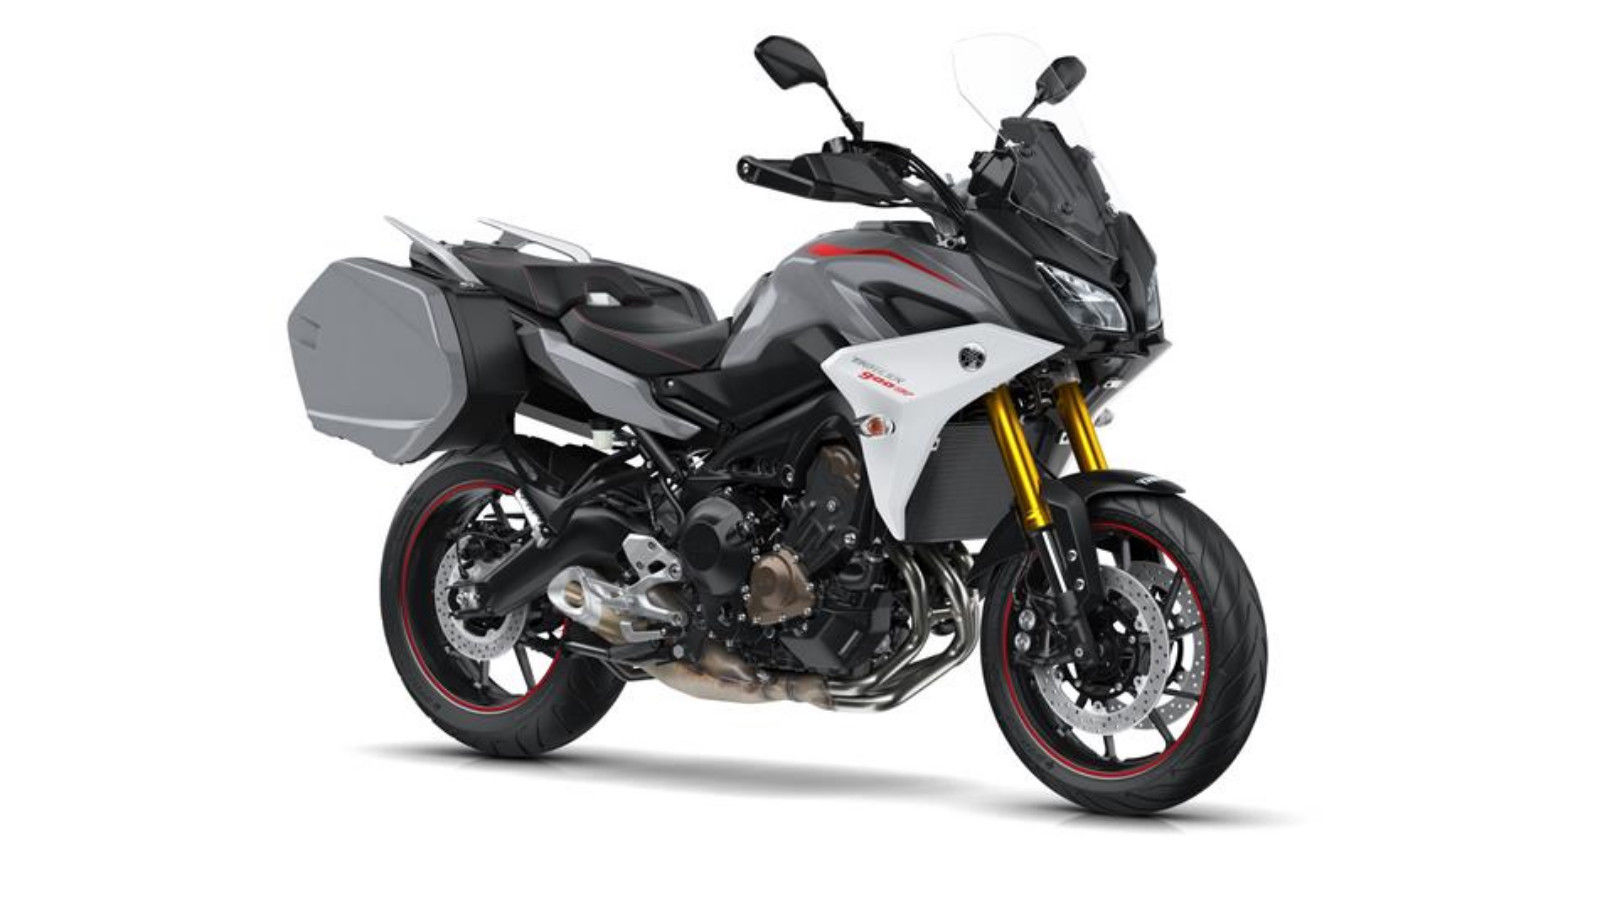 MT-07 ABS Akrapovic | Tiefer | weitere Extras